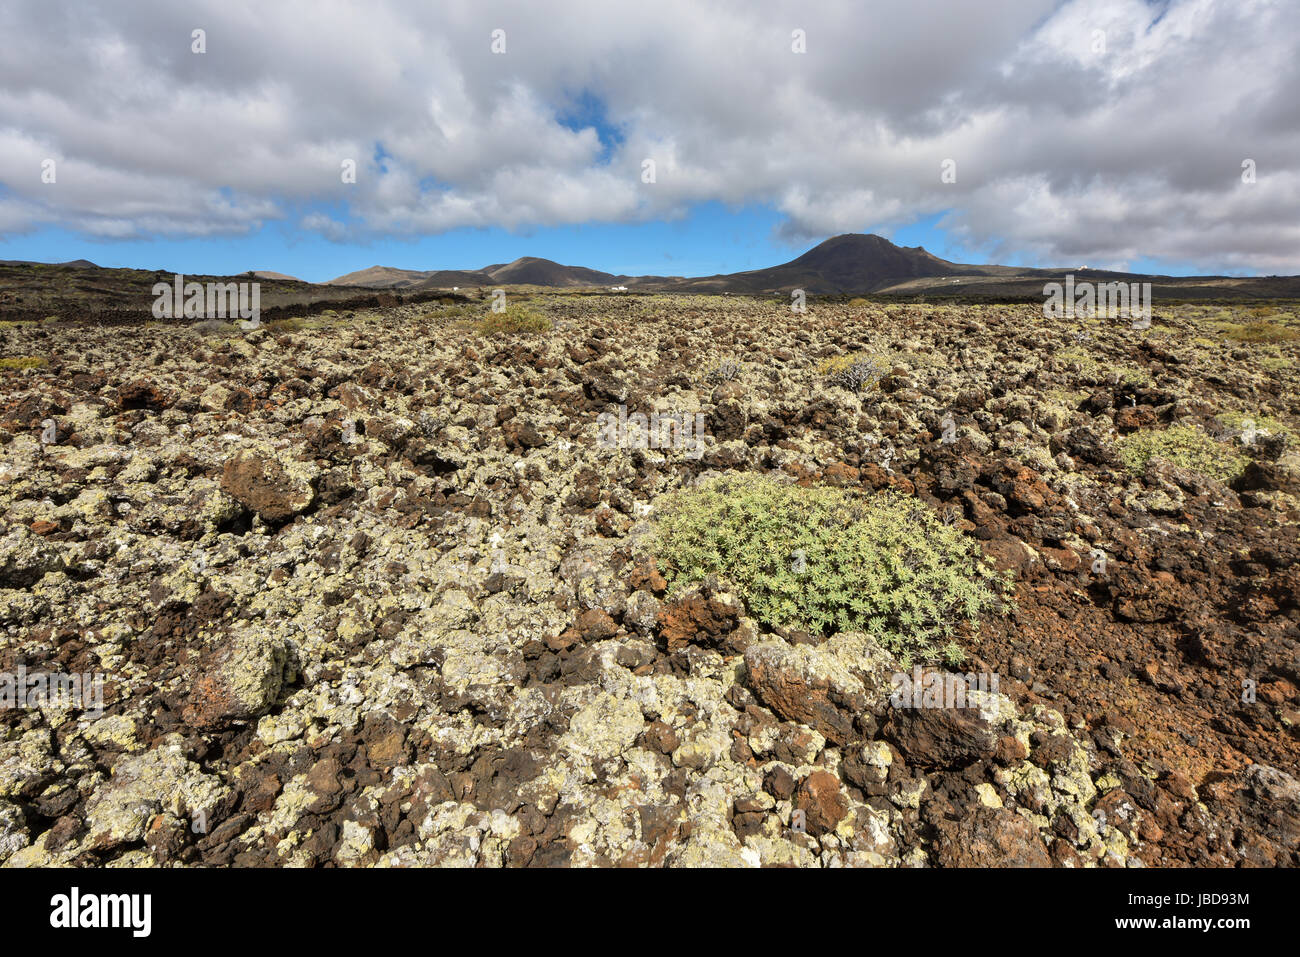 Fascinating volcanic landscape in Lanzarote near Jameos del Agua cave. Canary Islands, Spain - Stock Image